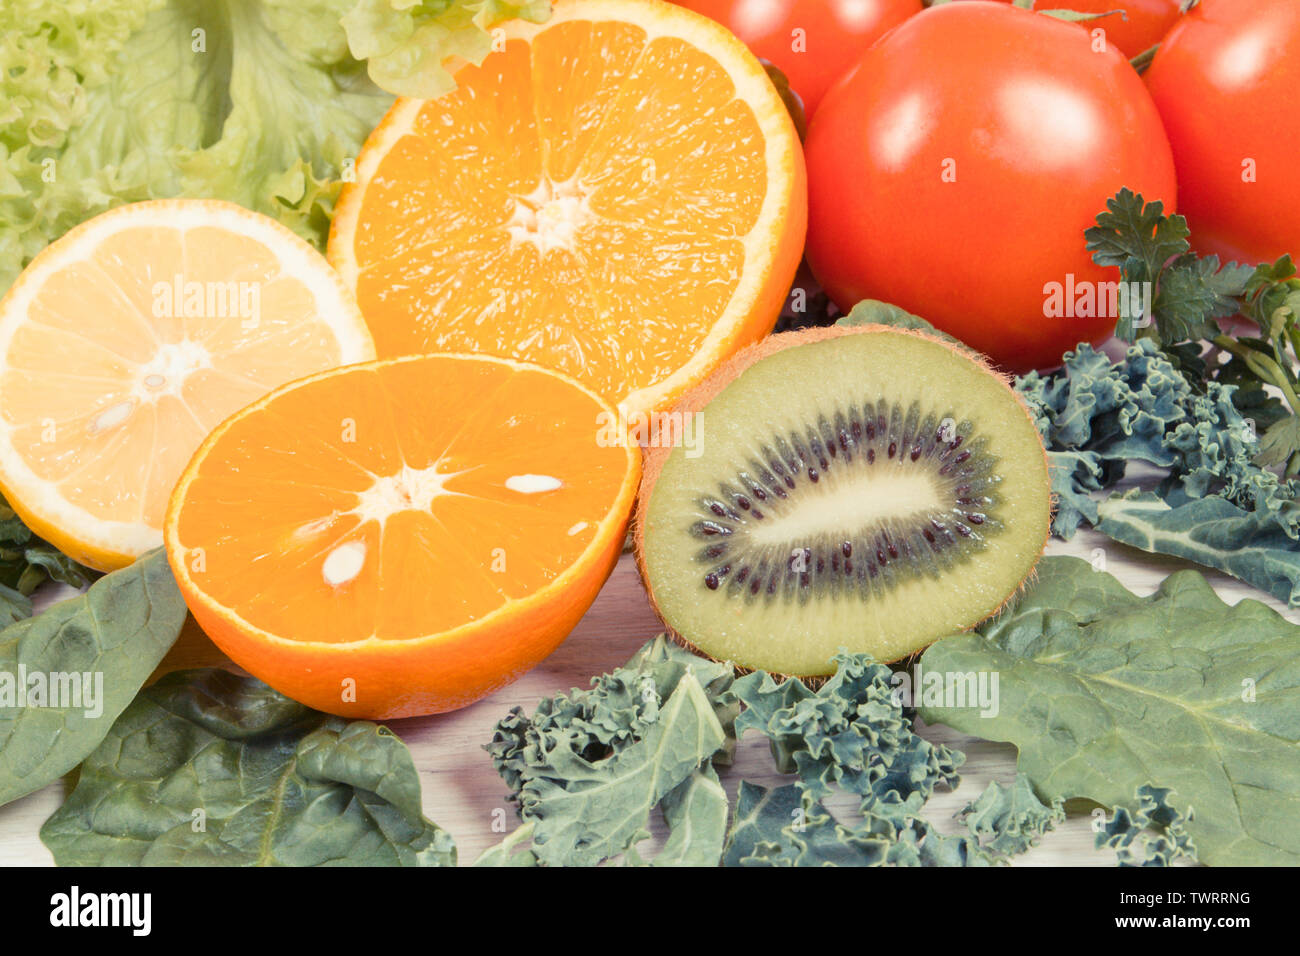 Fresh ripe fruits with vegetables as healthy nutritious snack containing natural vitamins - Stock Image